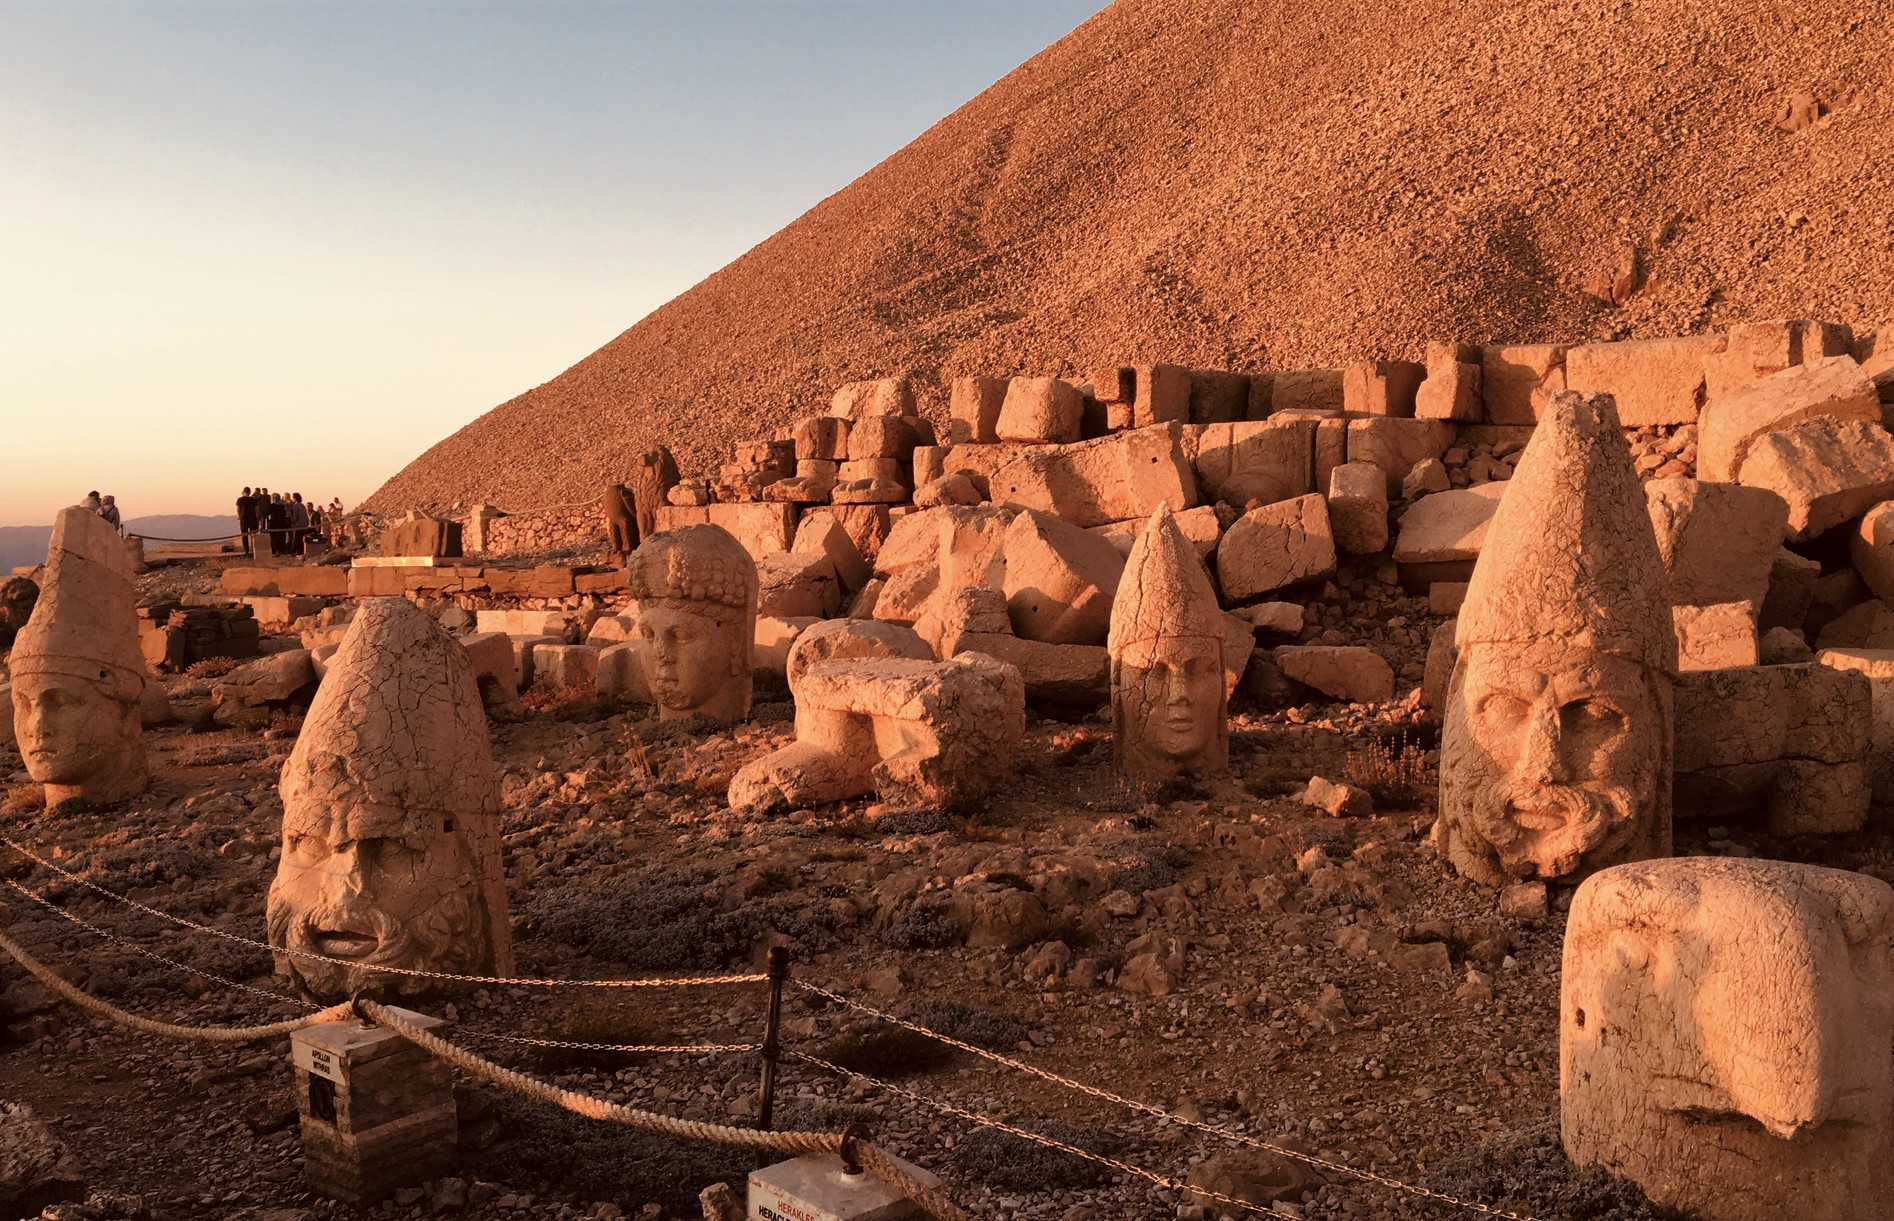 MOUNT NEMRUT TOUR 3 DAYS 2 NIGHTS